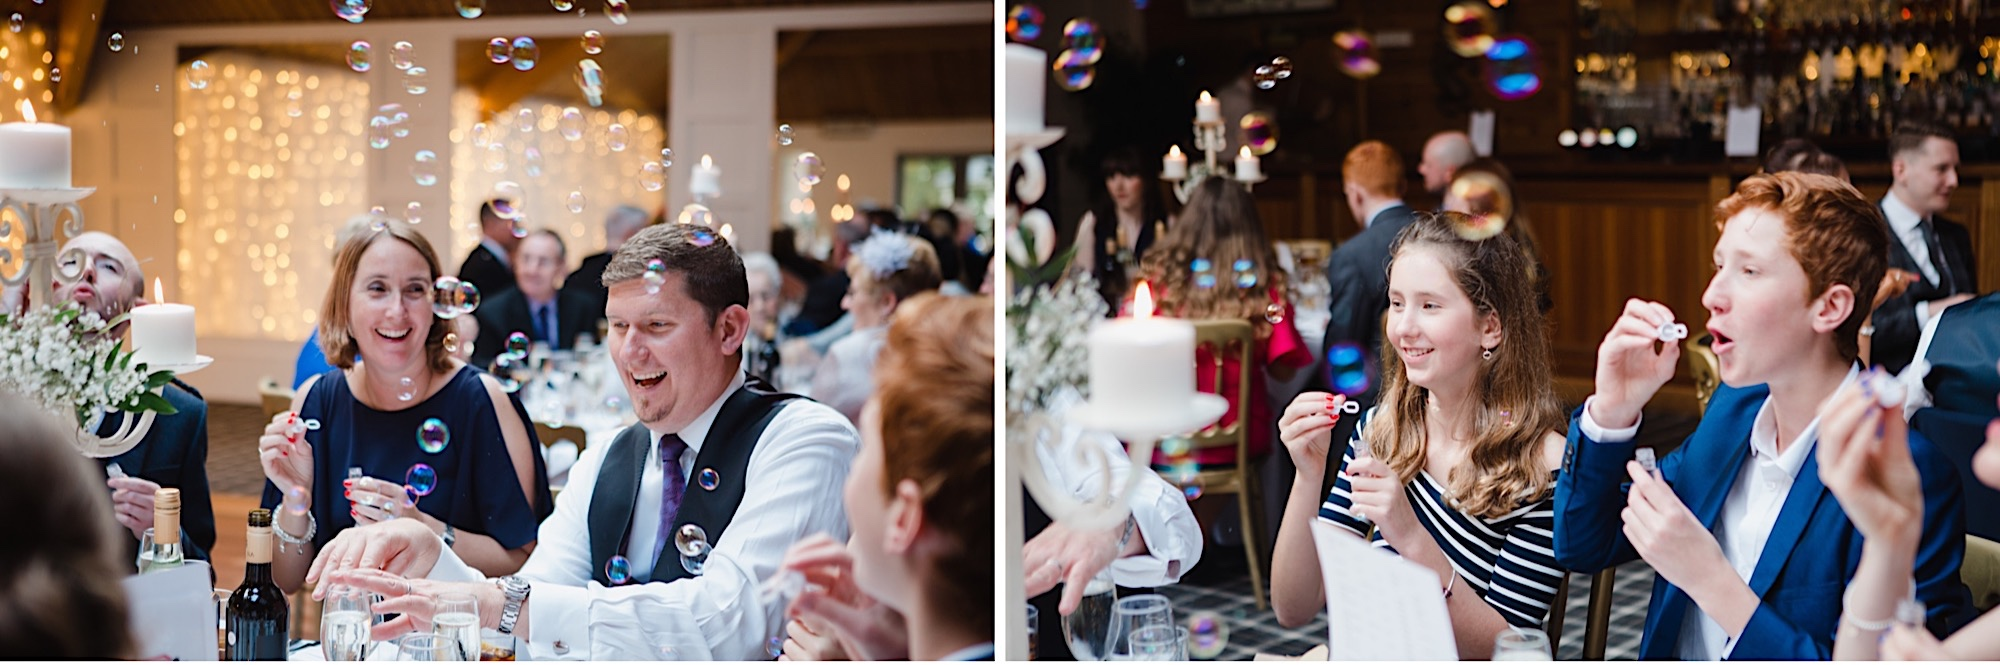 guests with bubbles blowing them at tables